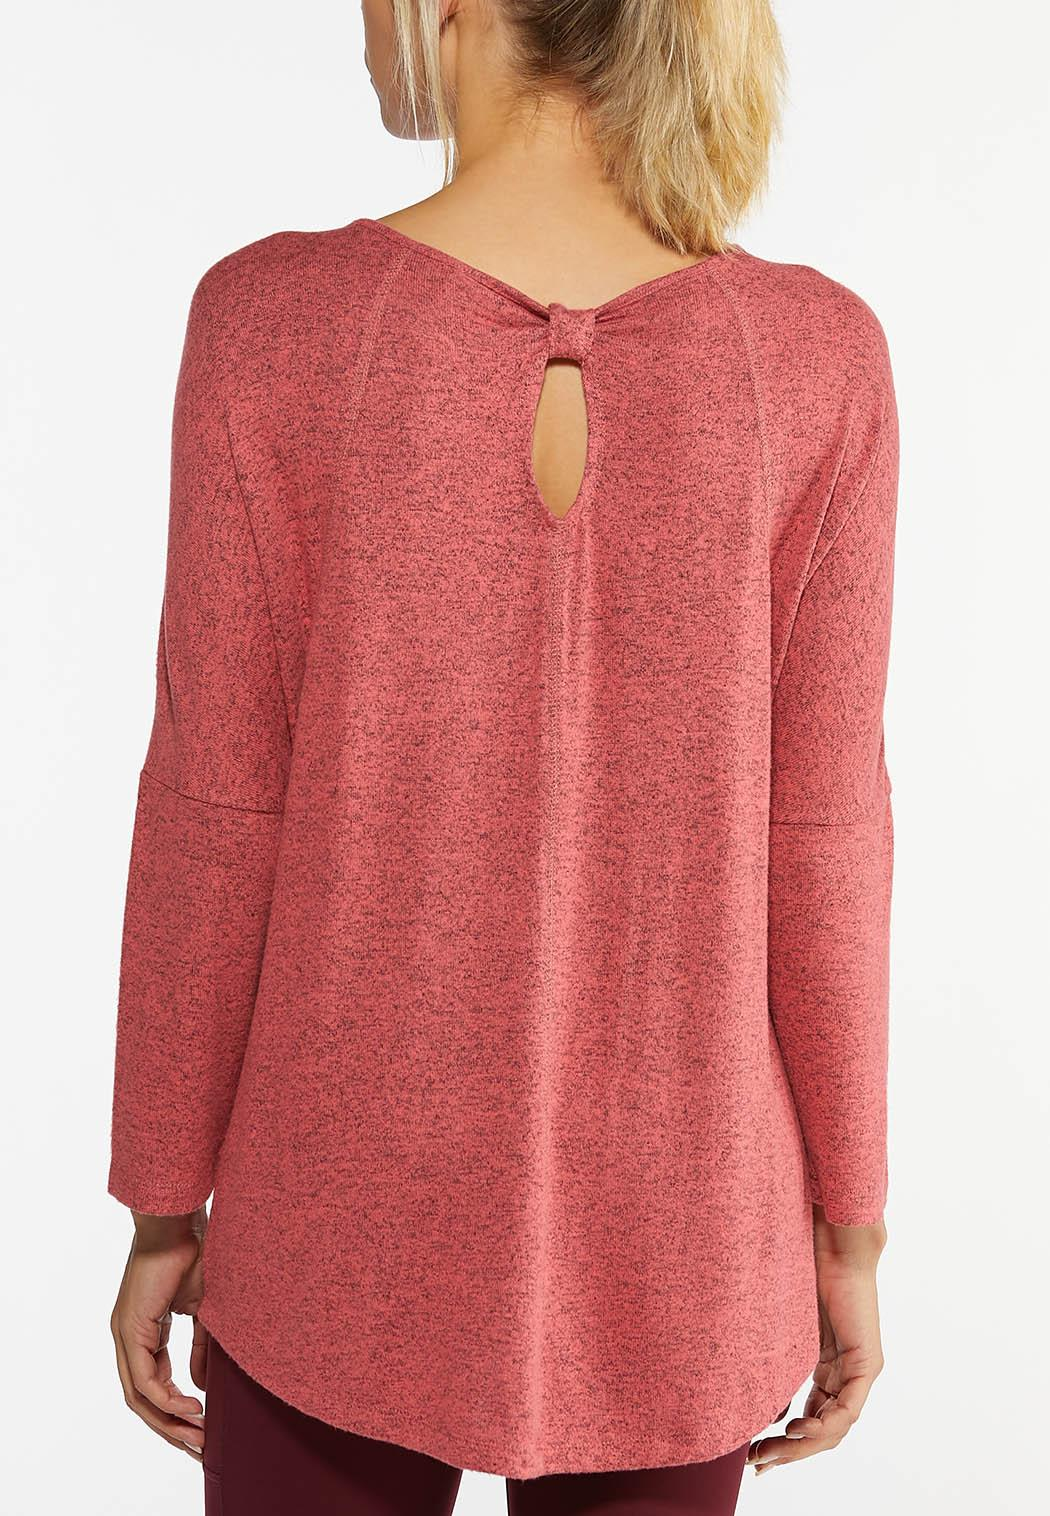 Rosey Be Kind Hacci Top (Item #44458127)